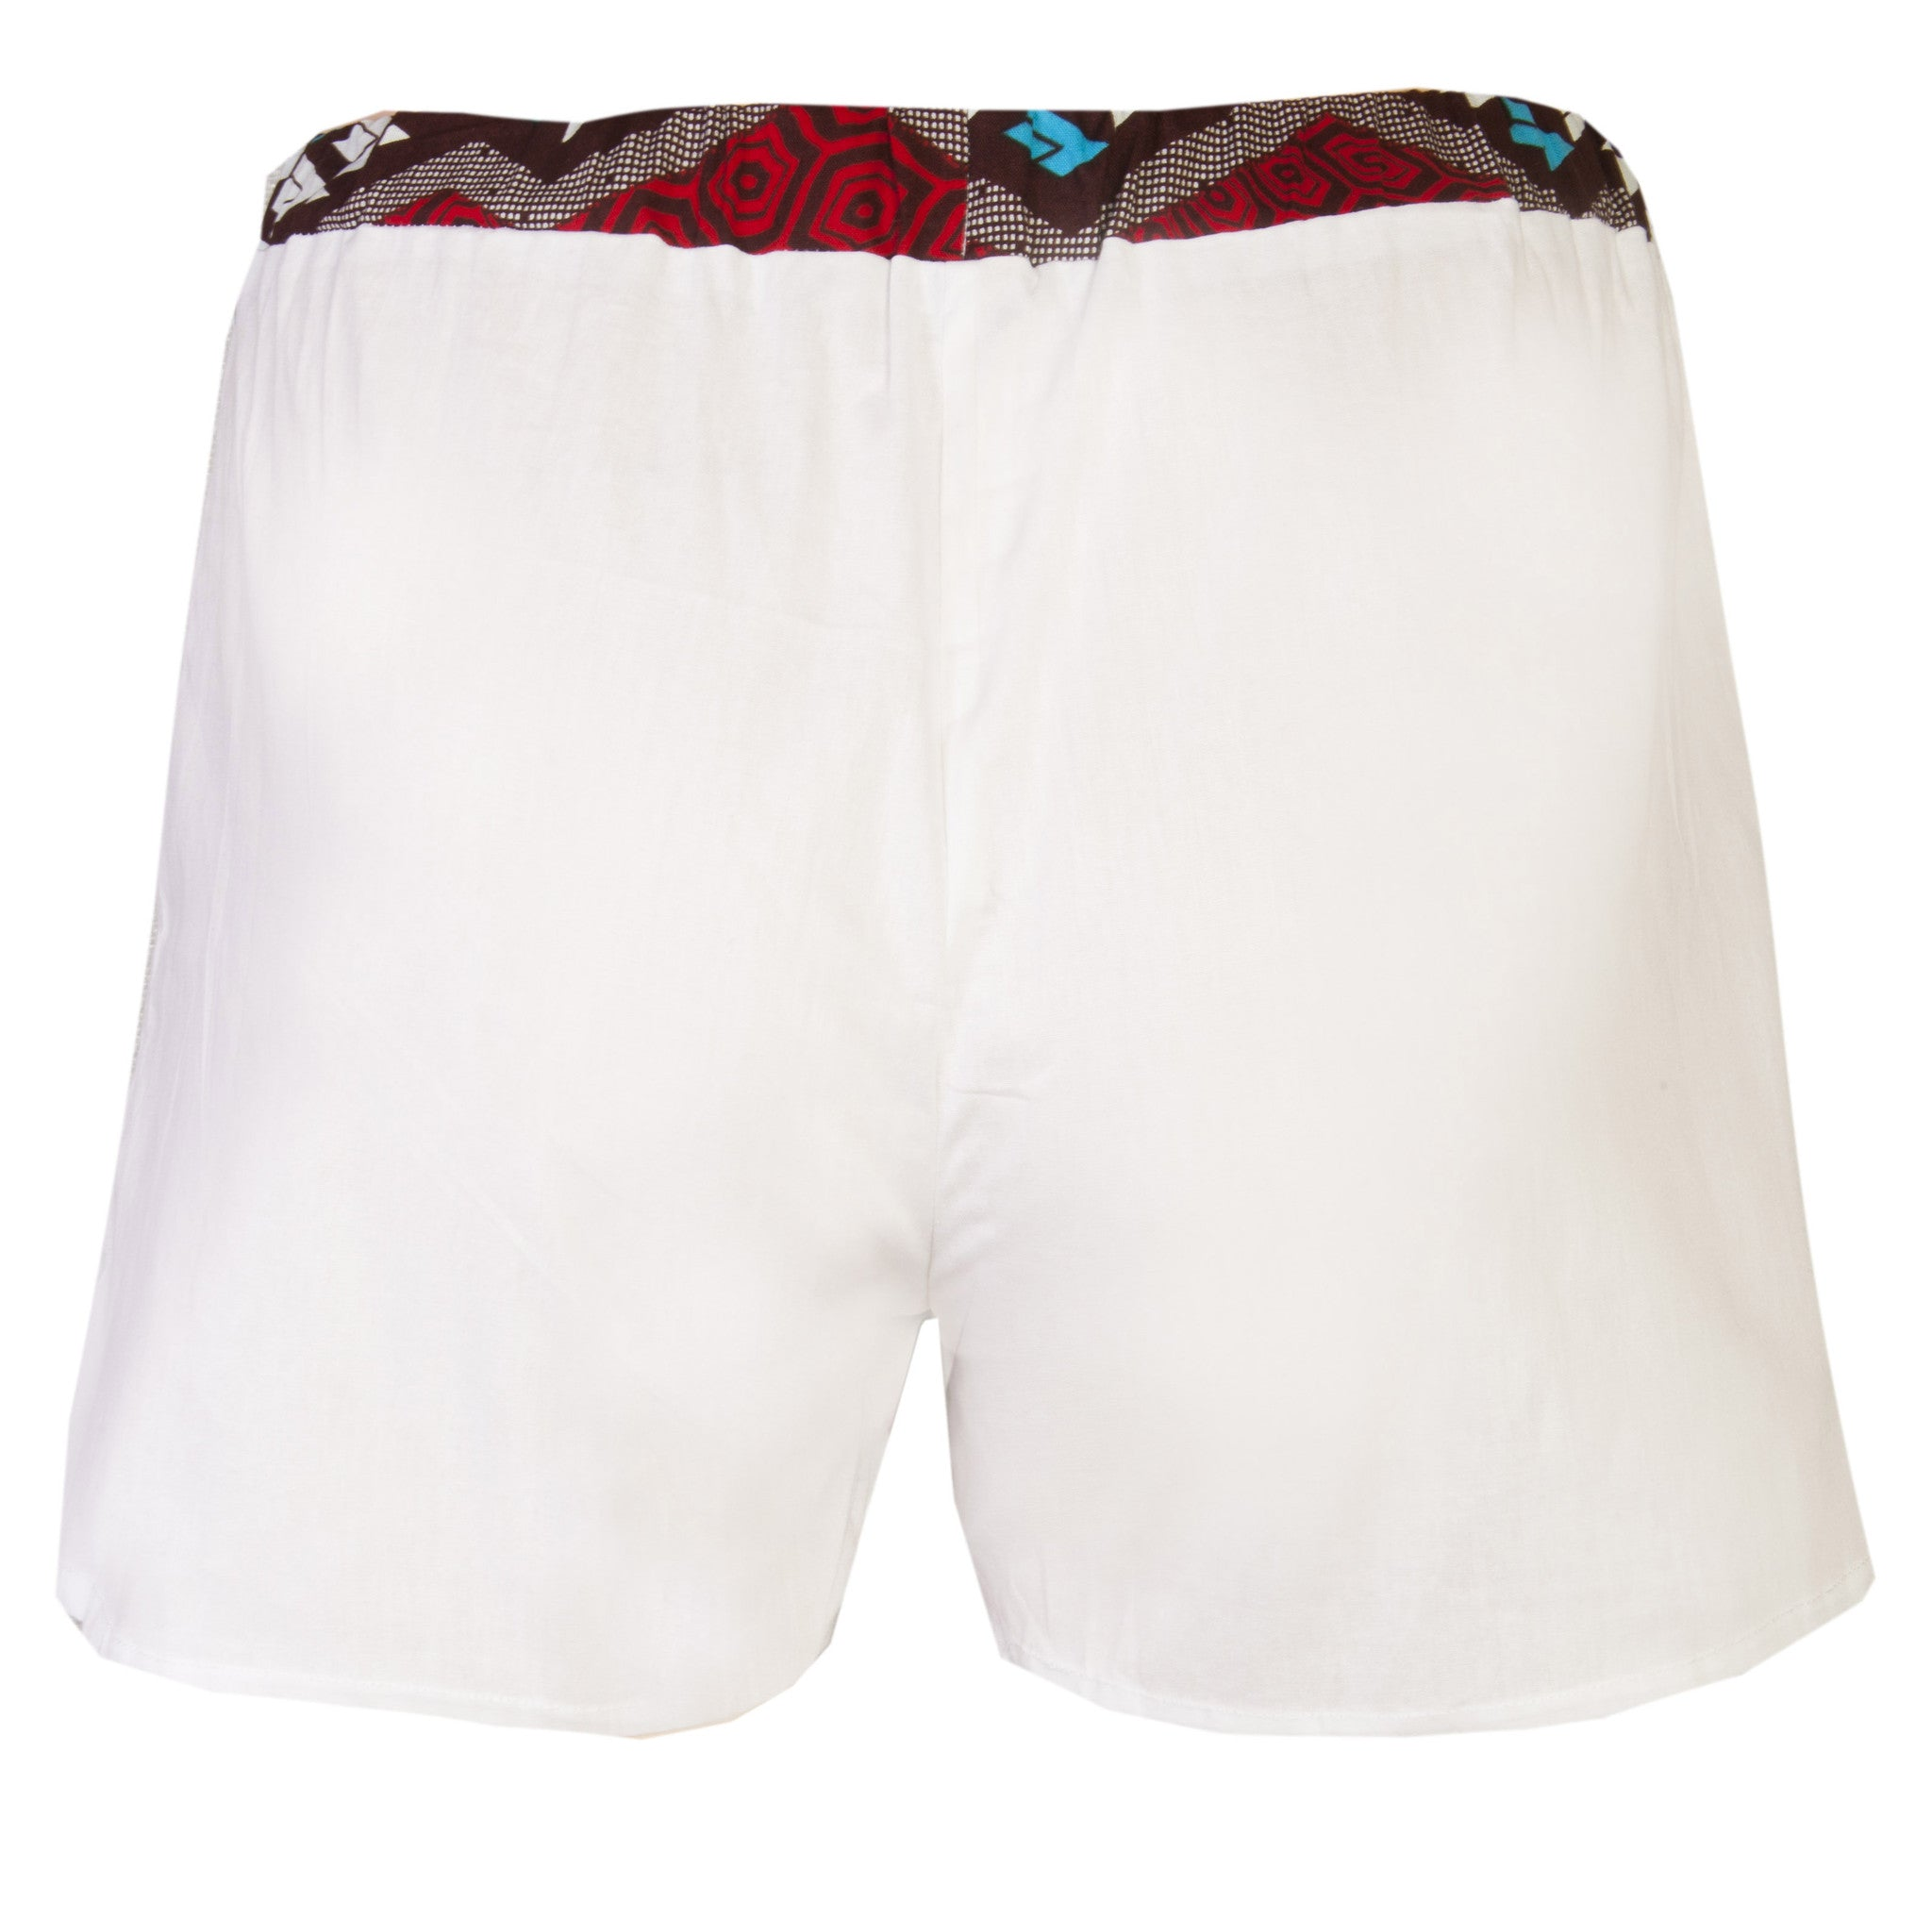 White 2 Pack Boxers Shorts - OHEMA OHENE AFRICAN INSPIRED FASHION  - 4